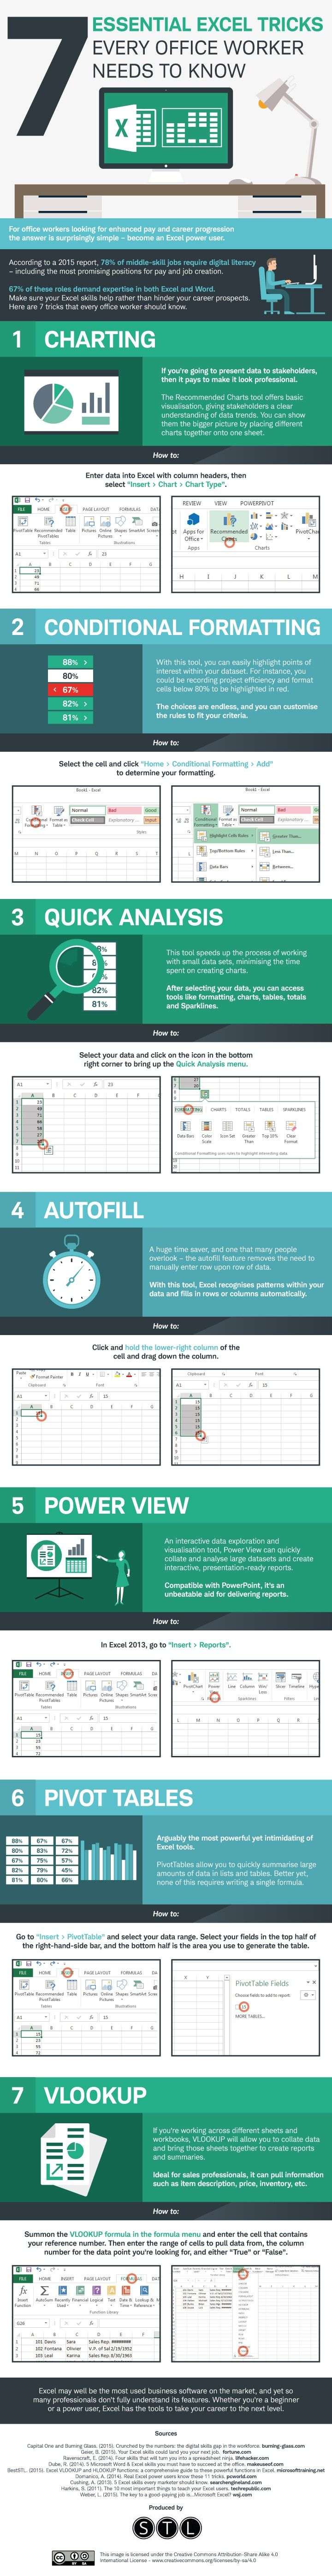 7 Essential Excel Tricks Every Office Worker Needs To Know #infographic